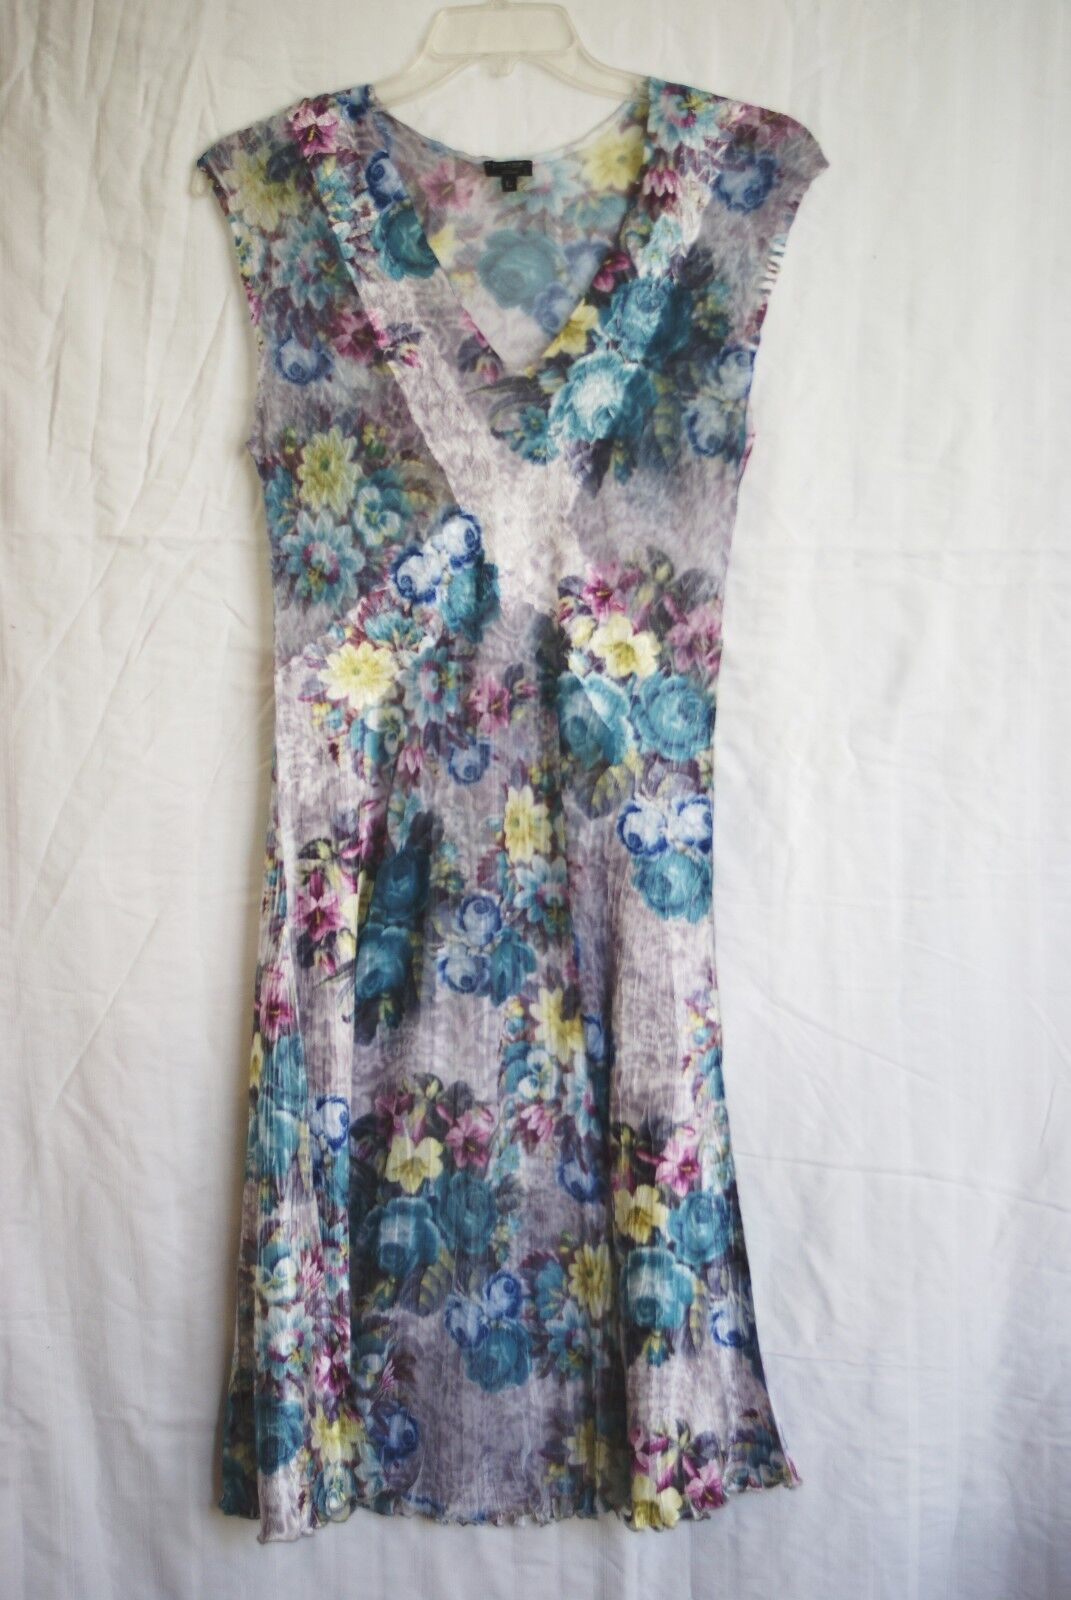 Komarov Floral Print Dress (Size L)